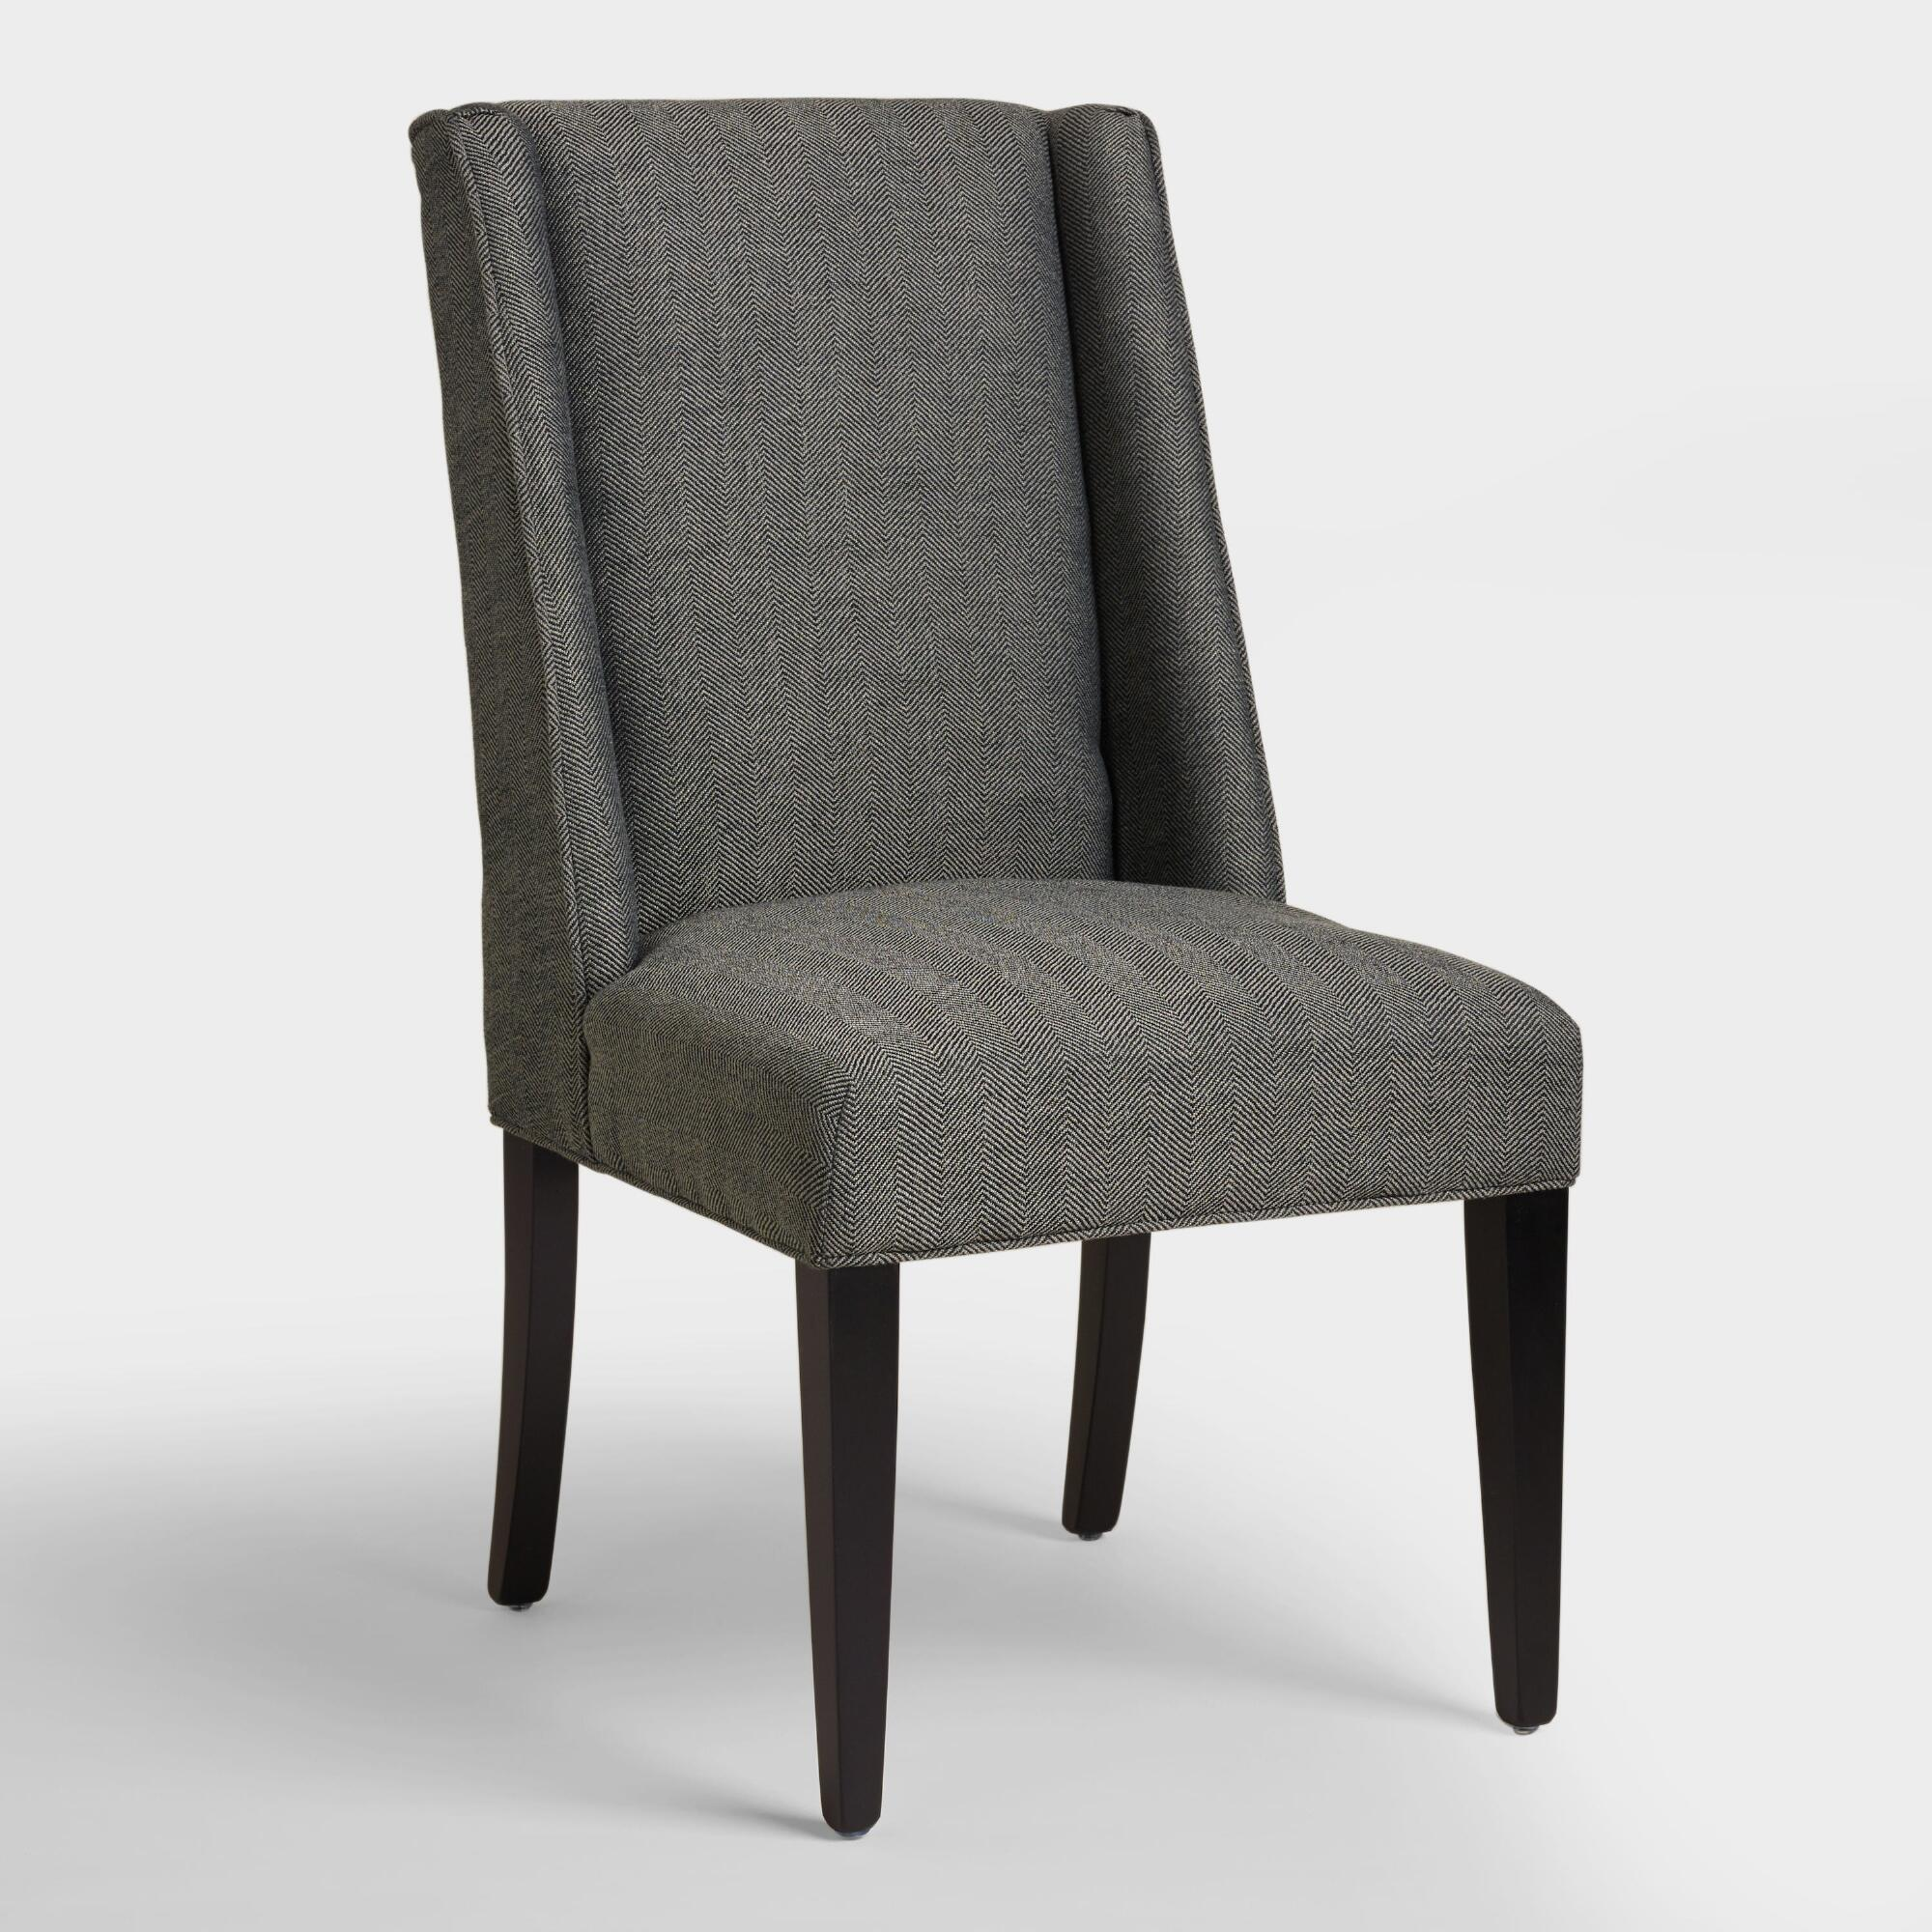 Charcoal herringbone lawford dining chairs world market for Dining room sofa seating